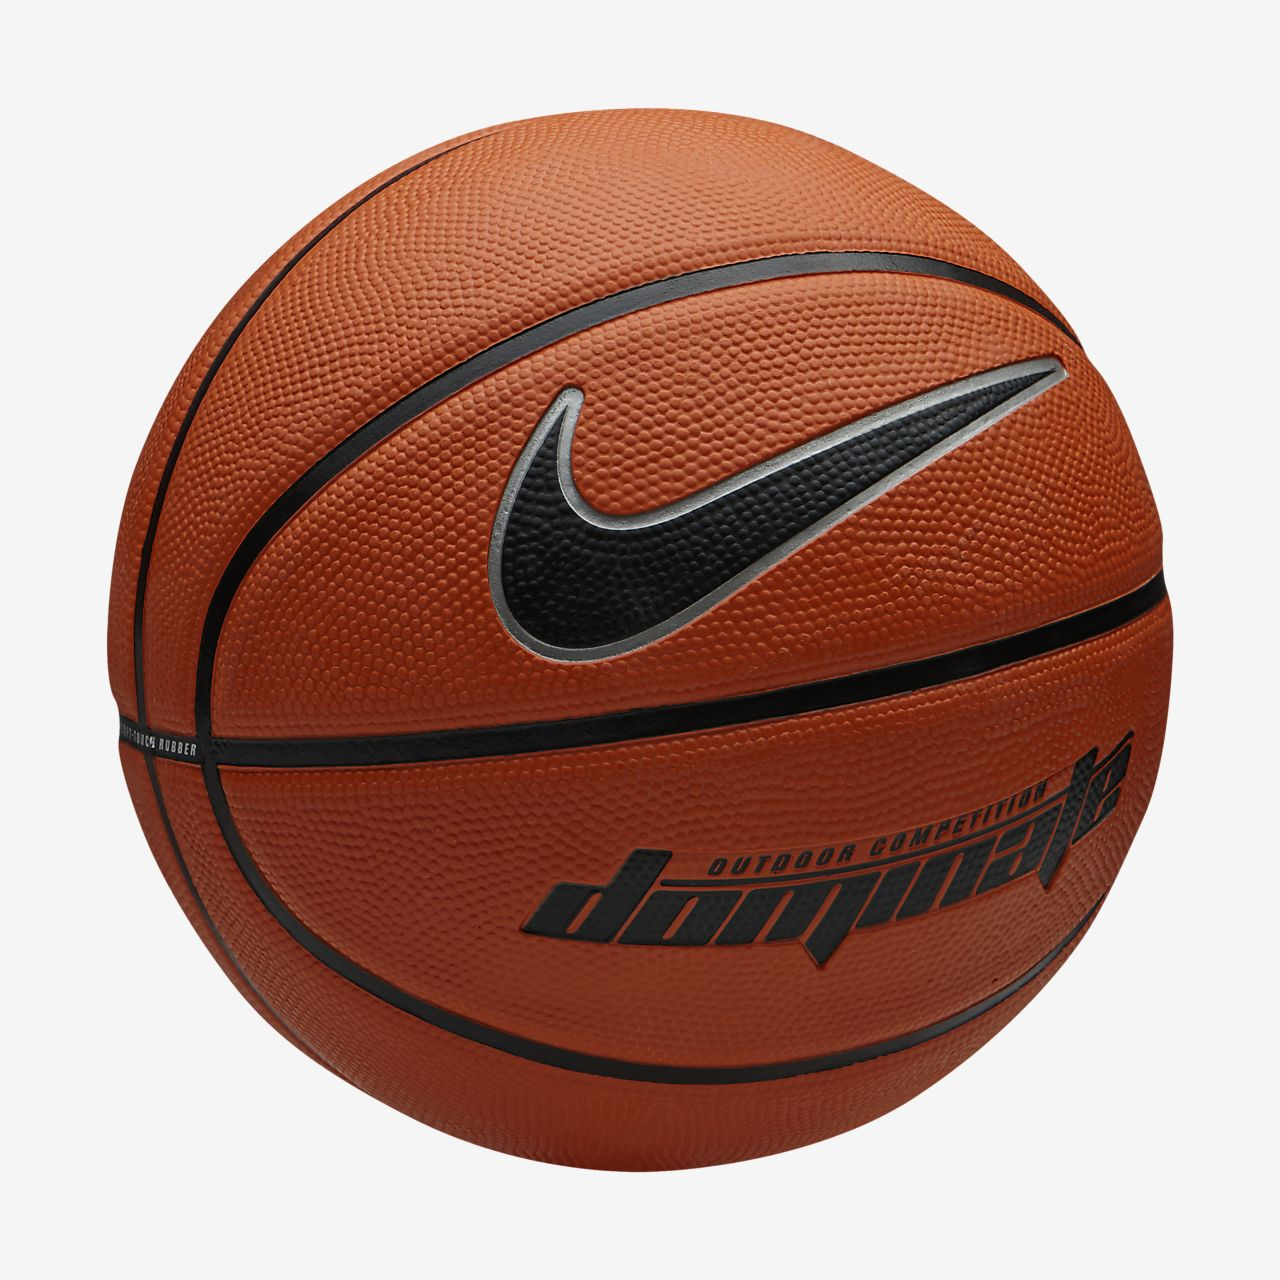 competitive price e97cd 4ac8d Basketball. Nike Dominate 8P